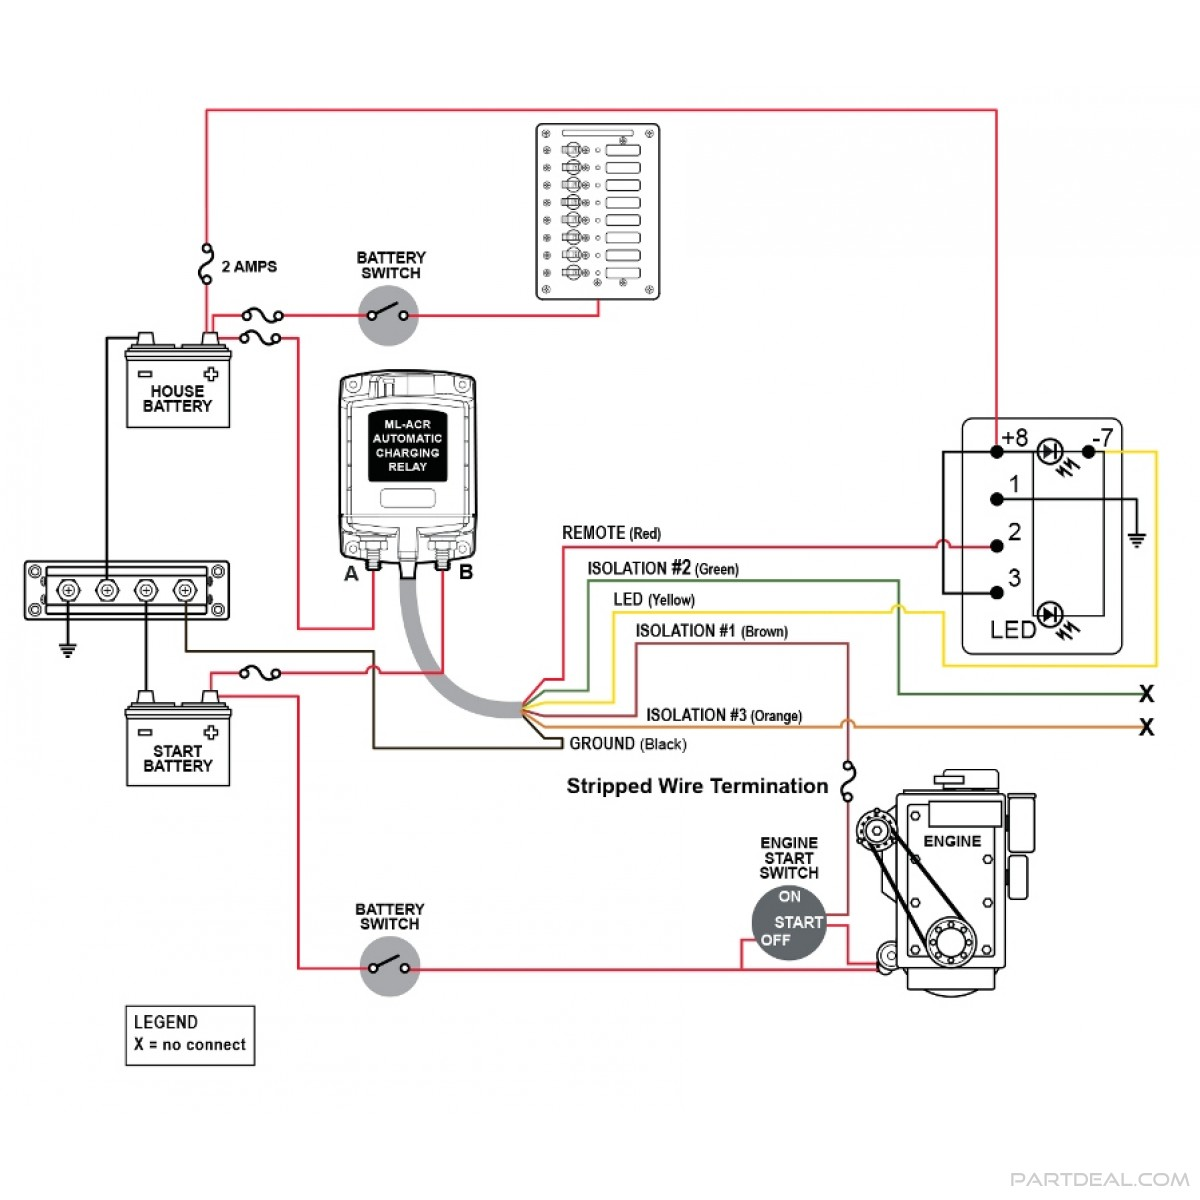 Fine Ddoax6Pbooo Cable Wiring Diagram Dc Wiring Library Wiring Cloud Photboapumohammedshrineorg